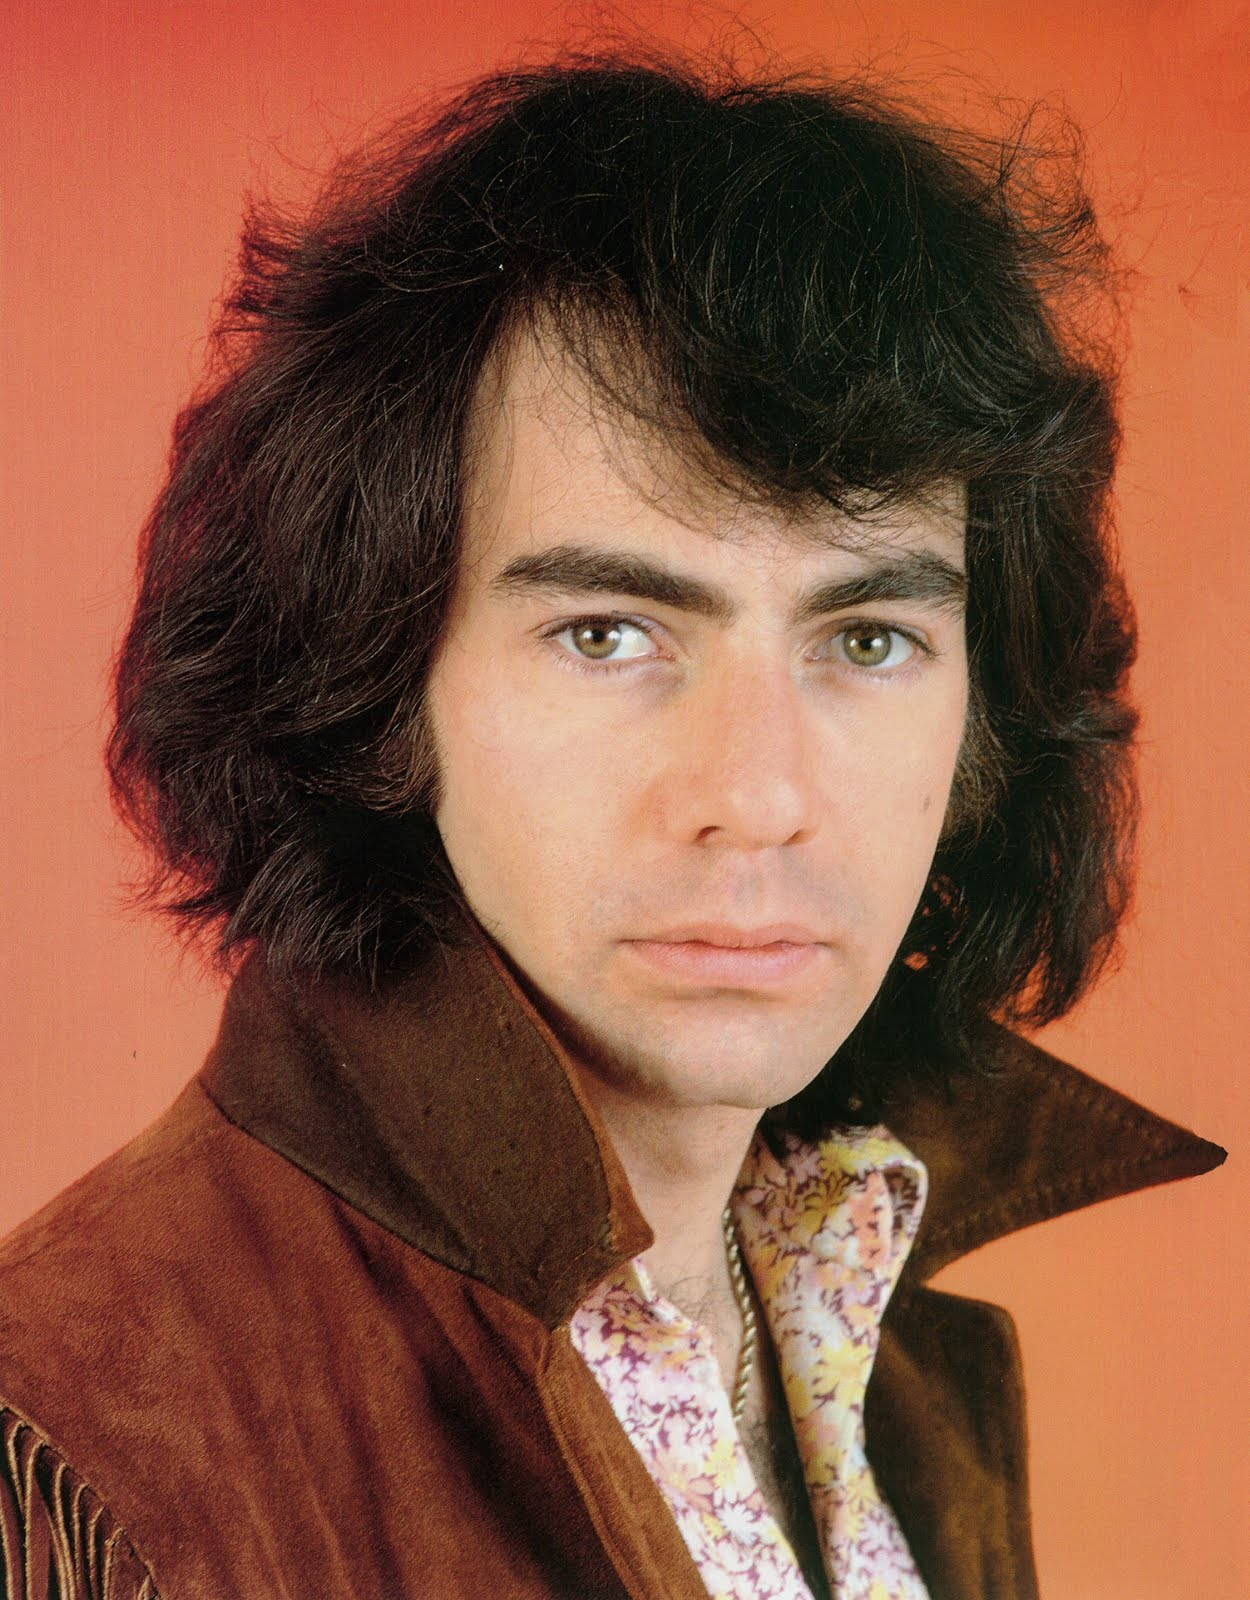 <b>Neil Diamond</b> images <b>neil diamond</b> HD wallpaper and background photos <b>...</b> - neil-diamond-neil-diamond-32402026-1250-1600